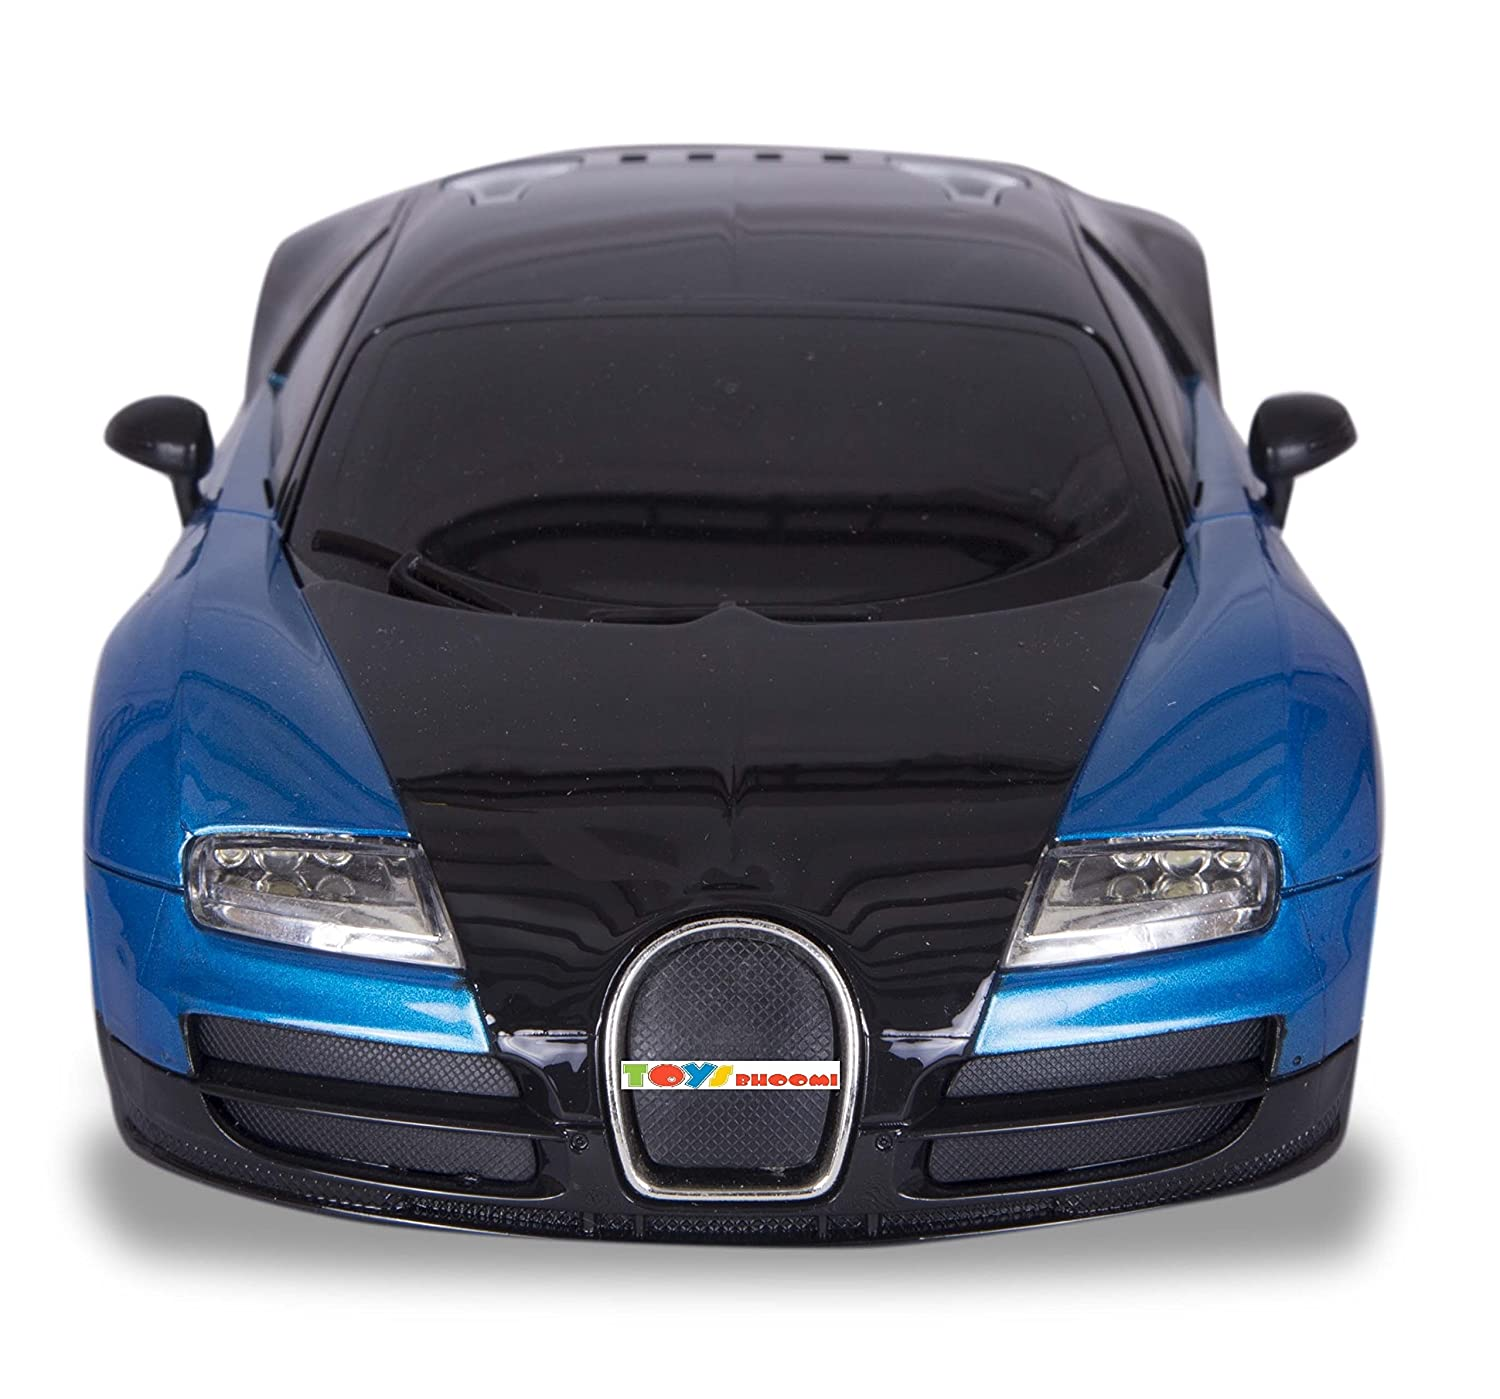 81WCZ16-1xL._SL1500_ Modern Bugatti Veyron Price and Pictures Cars Trend